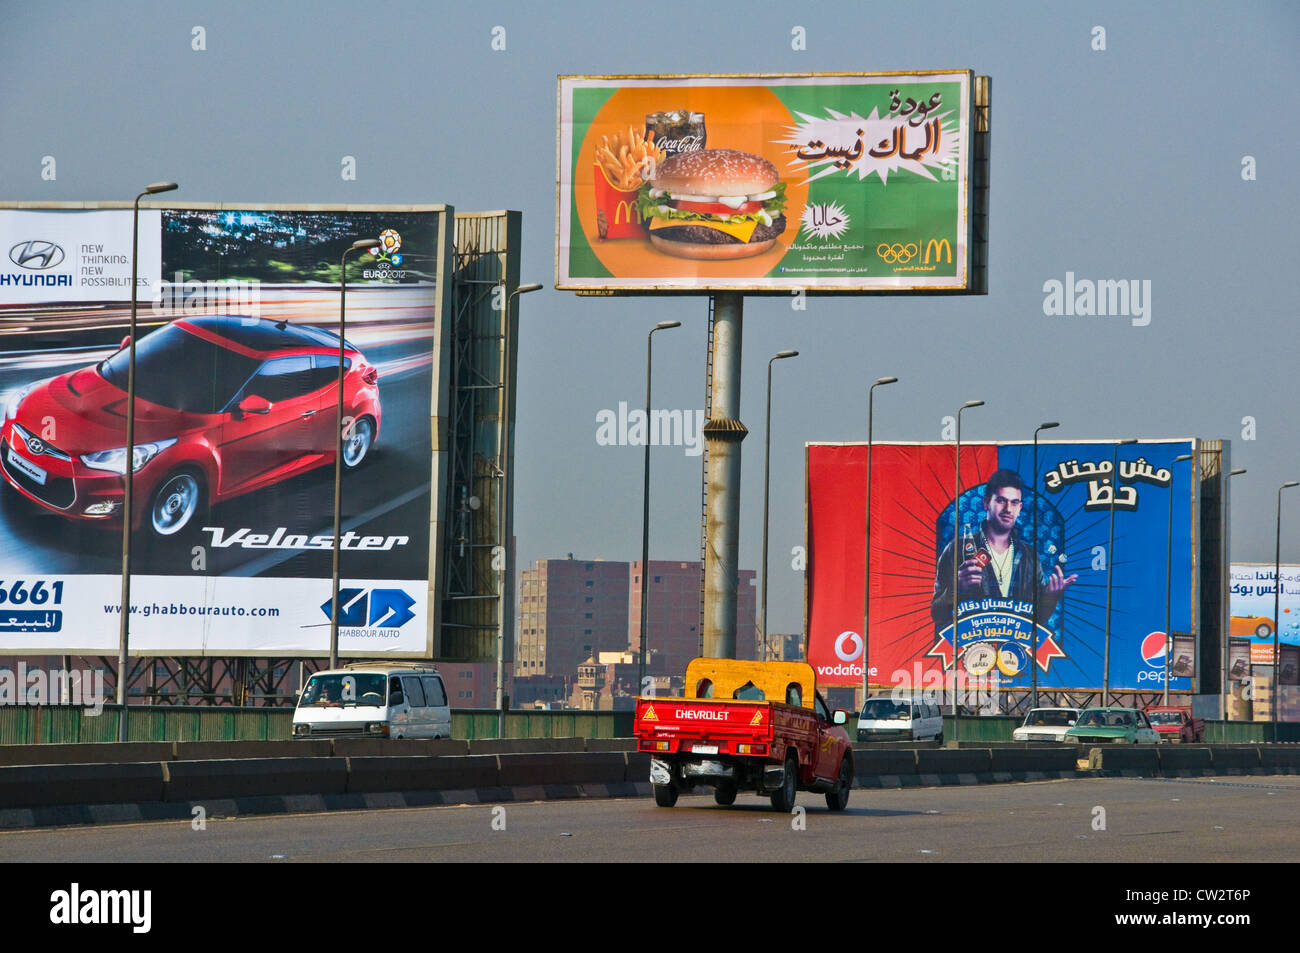 Advertising billboards along a highway Cairo Egypt - Stock Image